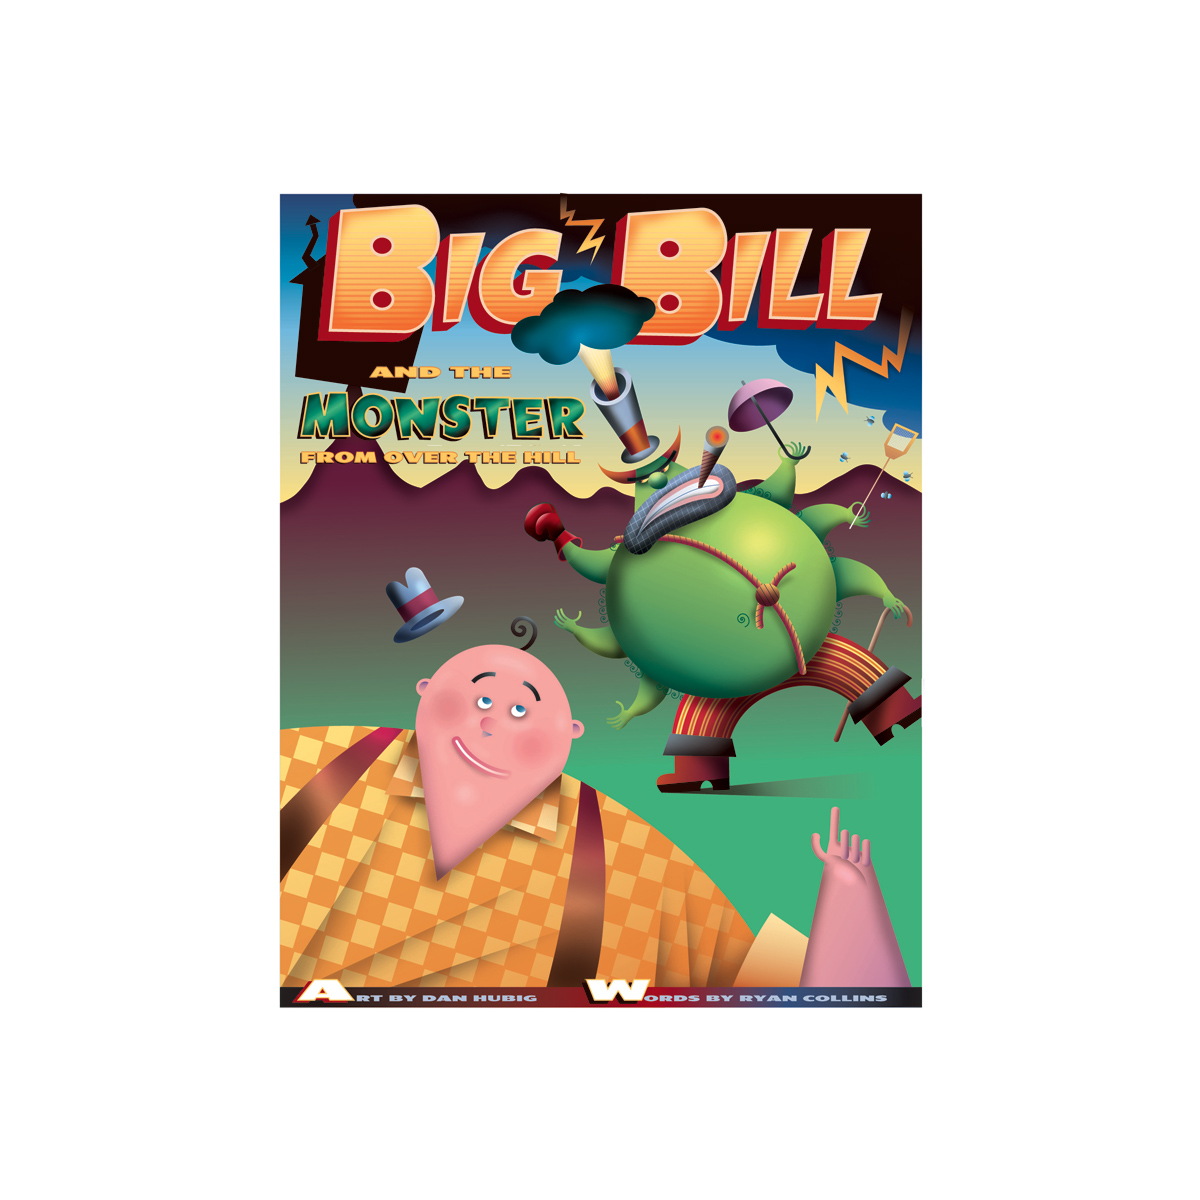 Big Bill & the Monster from up on the Hill